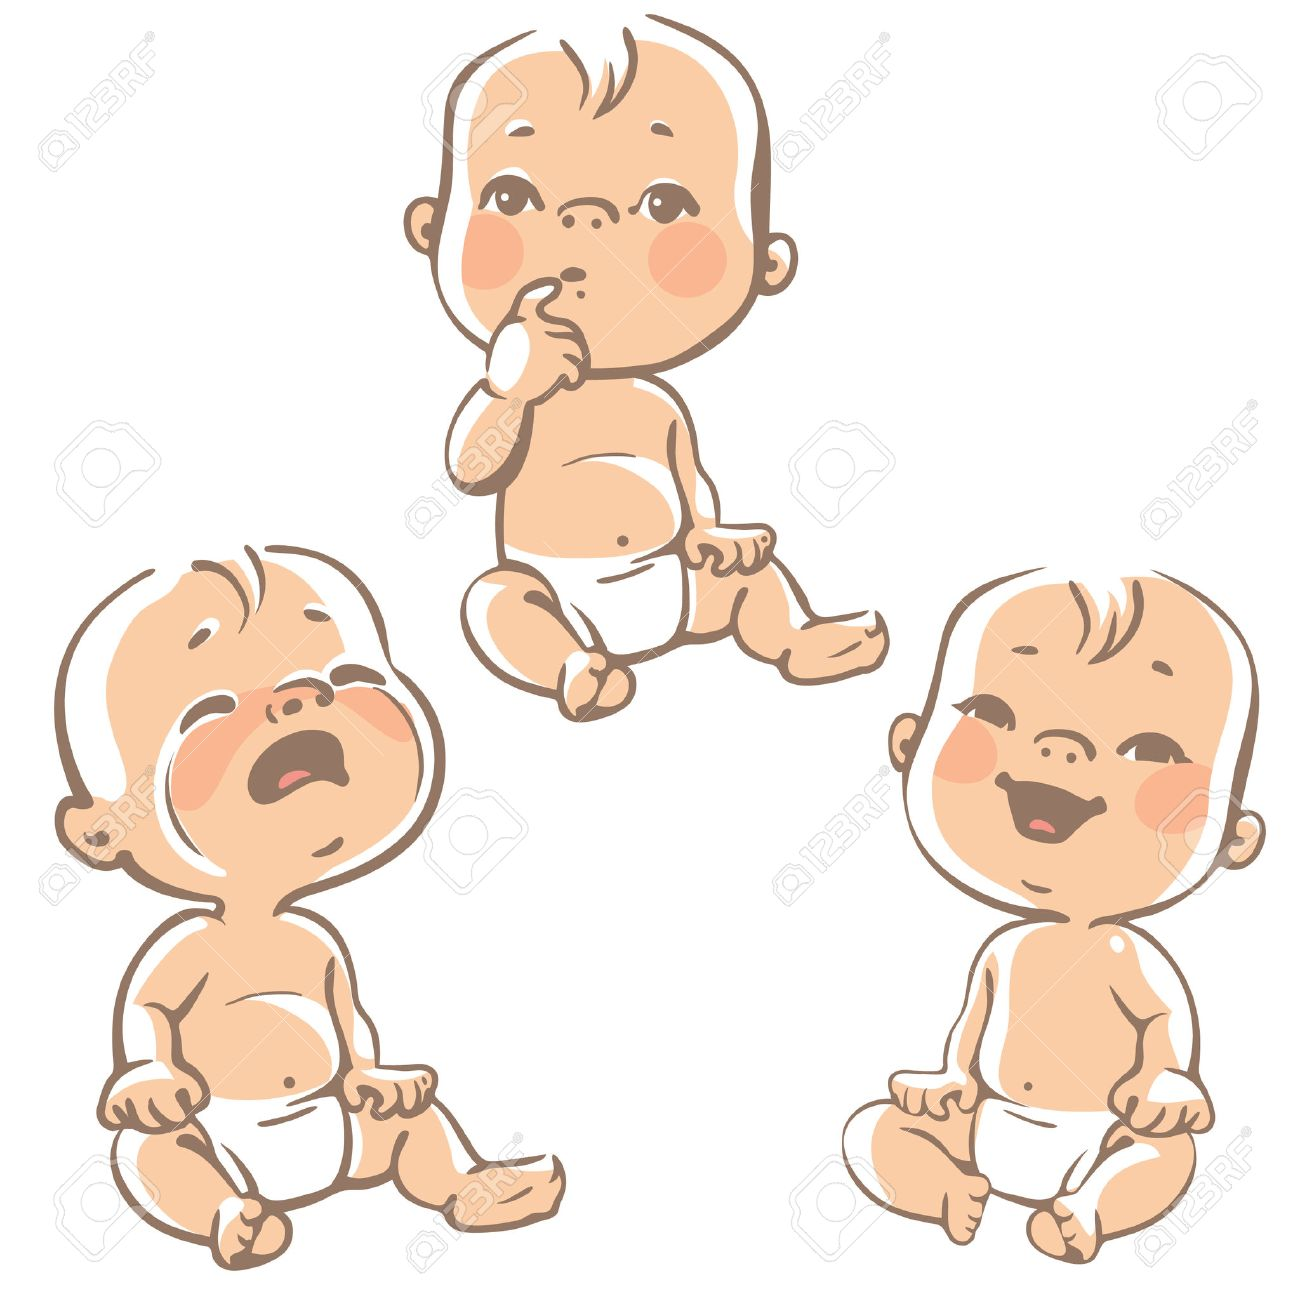 Set of baby emotion icons cartoon little babies in diapers set of baby emotion icons cartoon little babies in diapers crying baby smiling voltagebd Image collections